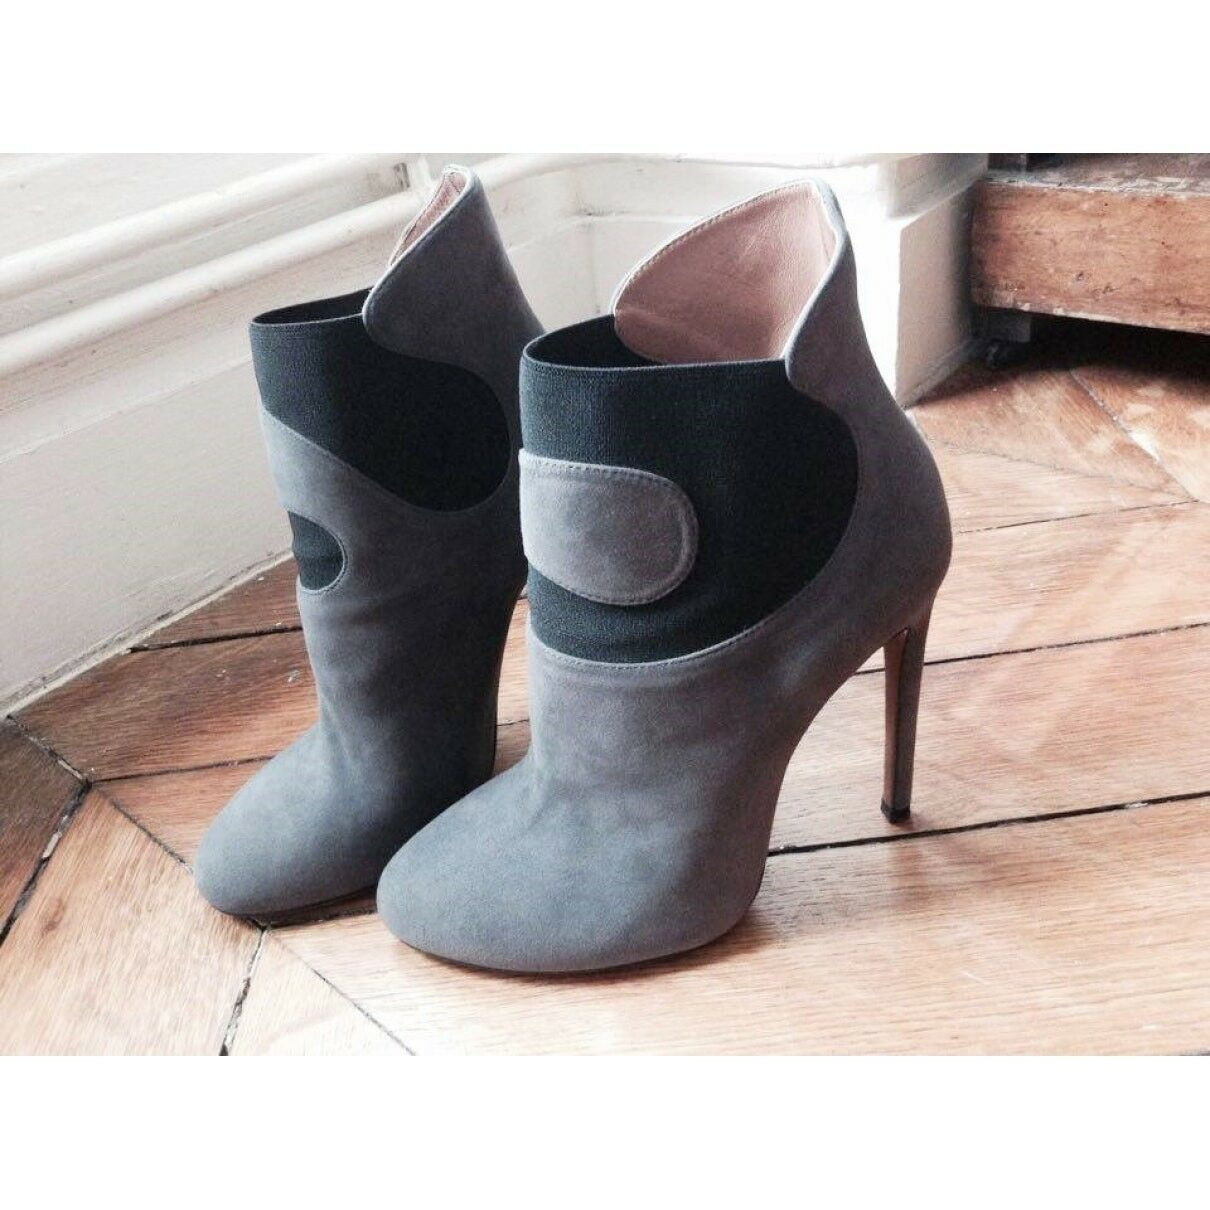 Alaïa grey suede boots size 37EU, excellent condition